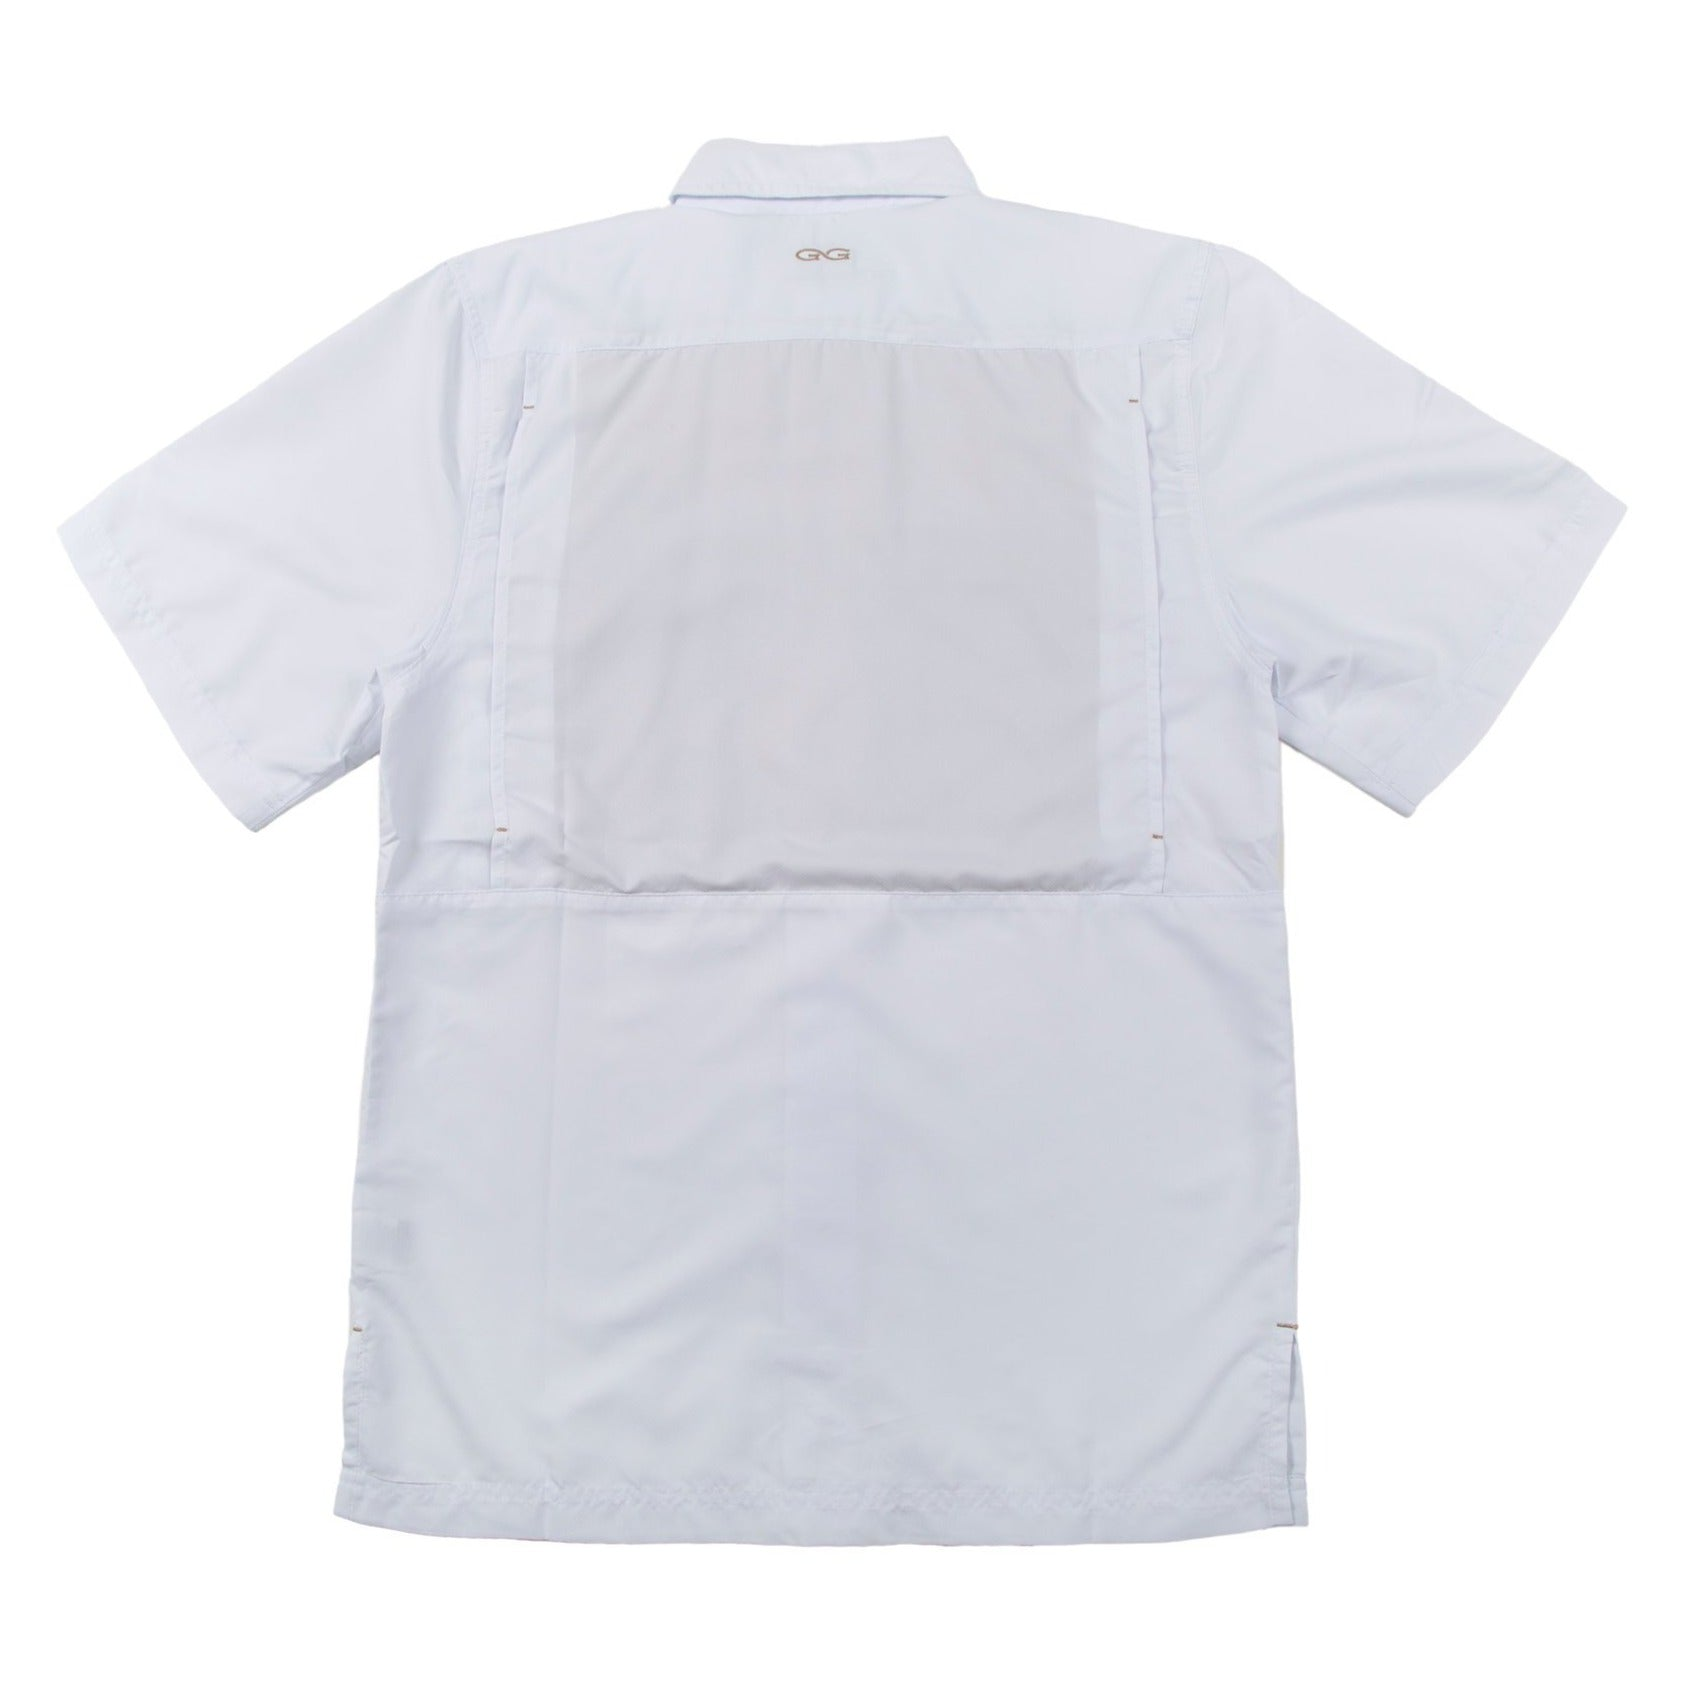 BUTTON-DOWN-FOR-ANYTHING OUTDOOR PERFORMANCE SHORT SLEEVE